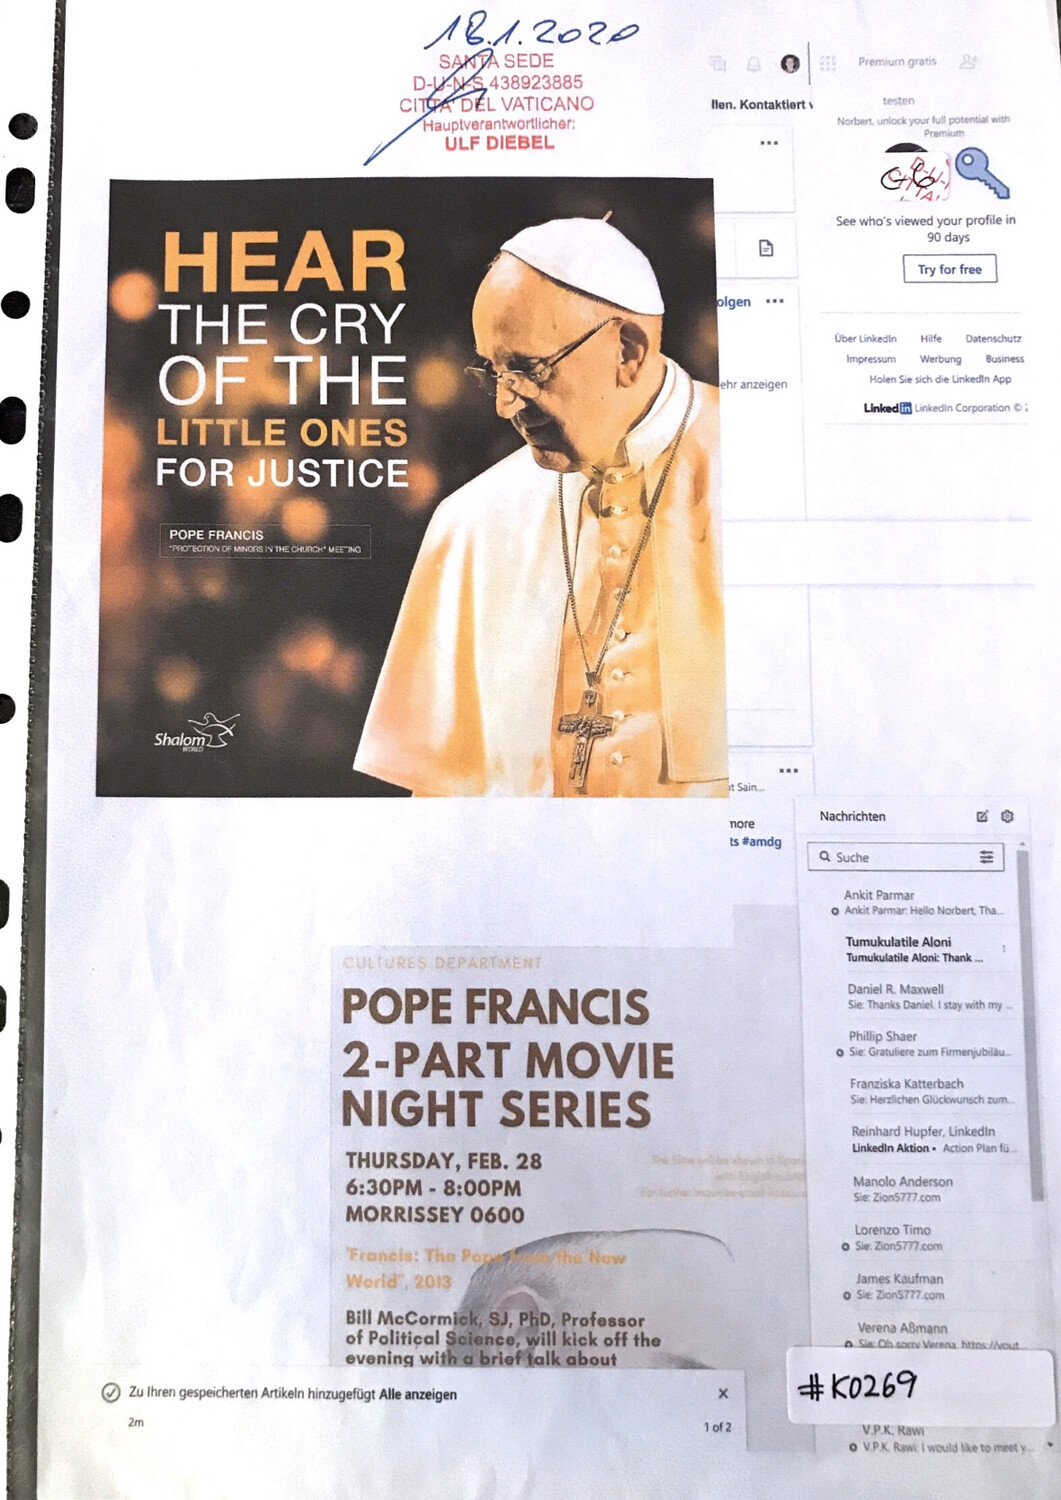 #K0269 l Pope Francis - Hear the cry of the little ones for justice